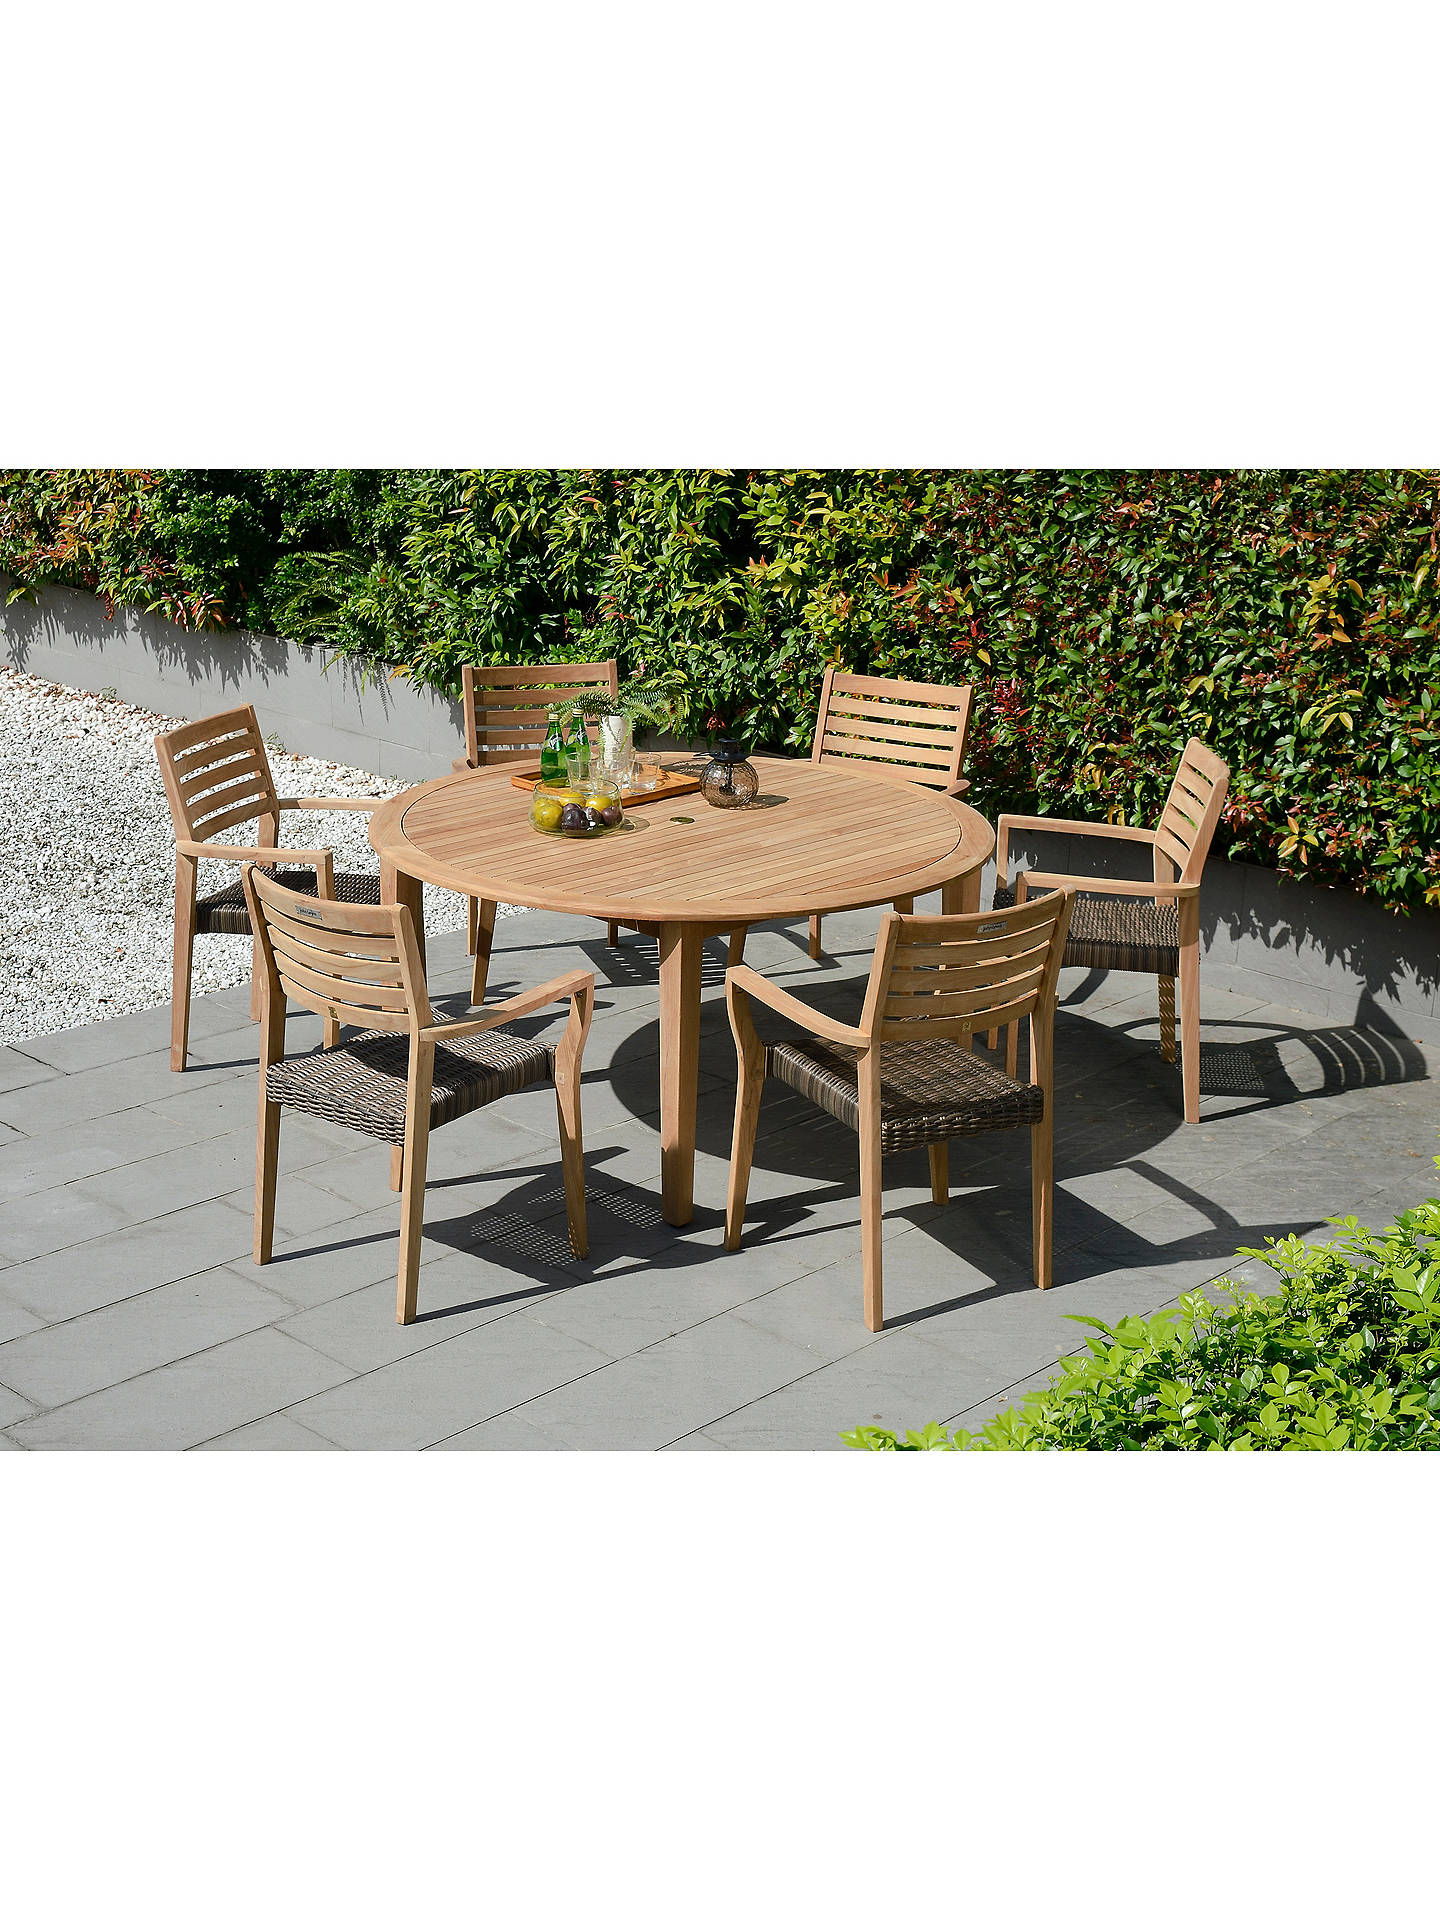 John Lewis & Partners Longstock Woven Stacking Garden Dining Armchairs, Set  of 8, FSC-Certified (Teak Wood), Rattan/Natural